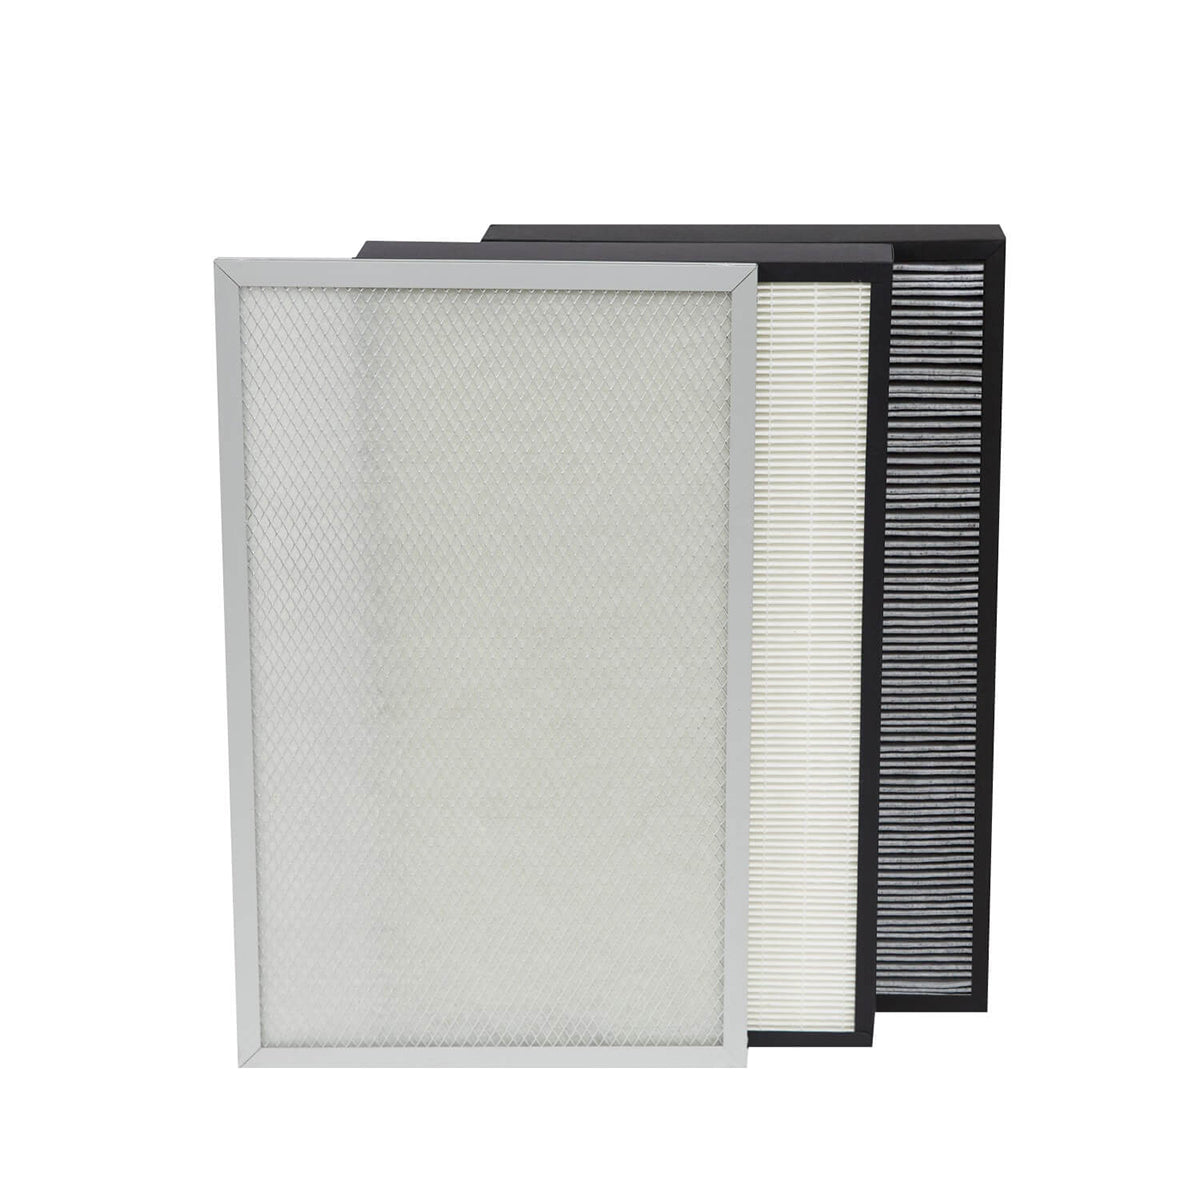 HealthyAir® HA-Series-1219-CM Replacement Filters